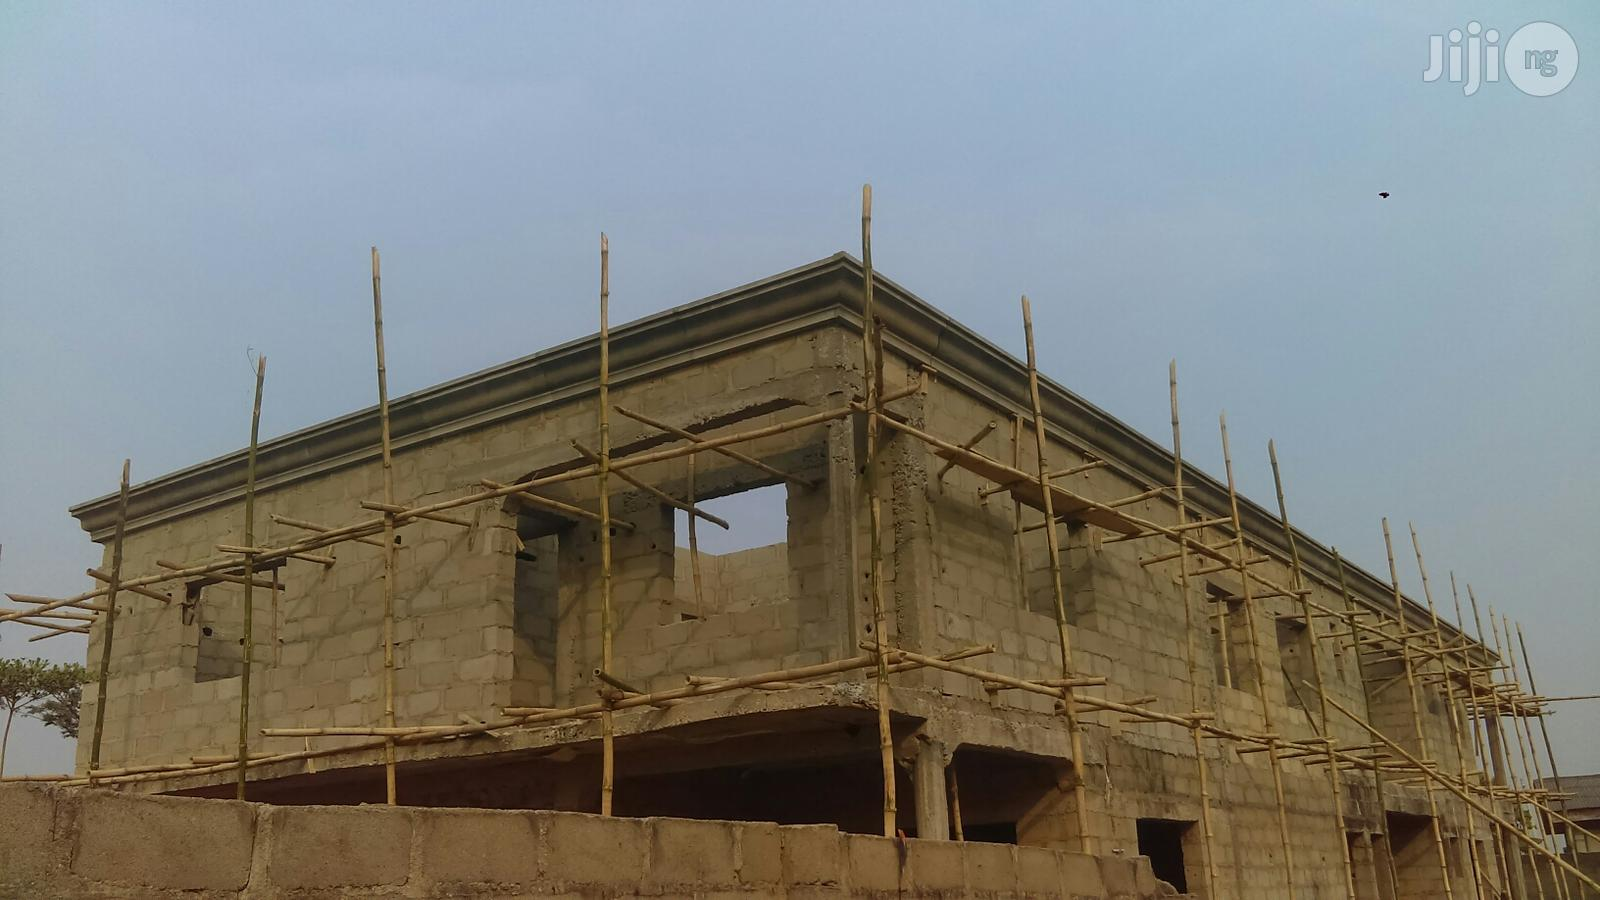 Archive Parapet Design In Nigeria In Ikorodu Building Trades Services Ola 39 D Pre Casting Builders Jiji Ng In Ikorodu Building Trades Services From Ola 39 D Pre Casting Builders On Jiji Ng